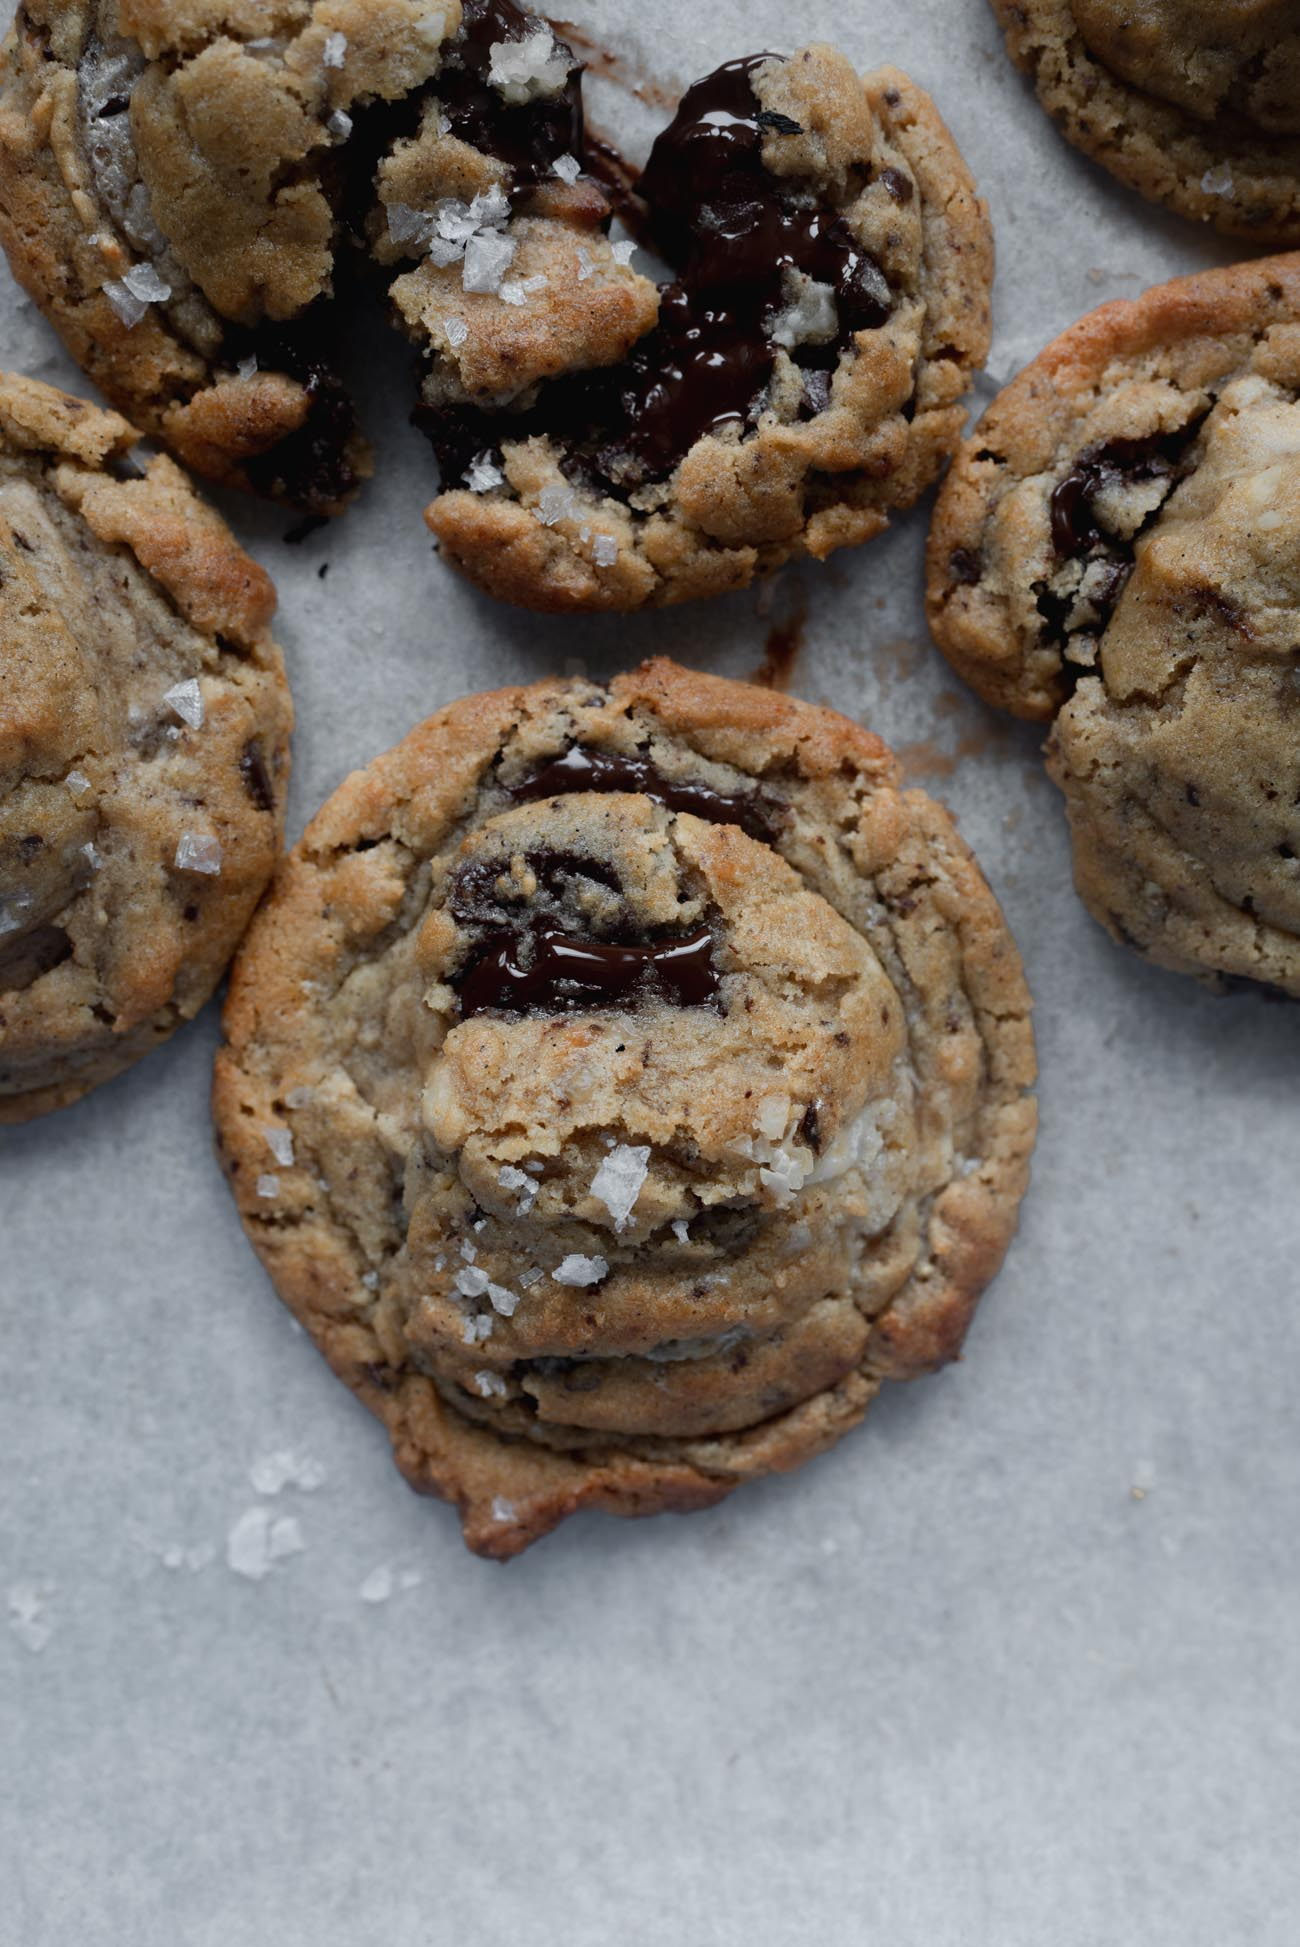 Halvah-Burnt-Butter-and-Walnut-Chocolate-Chunk-Cookies-9-of-14.jpg